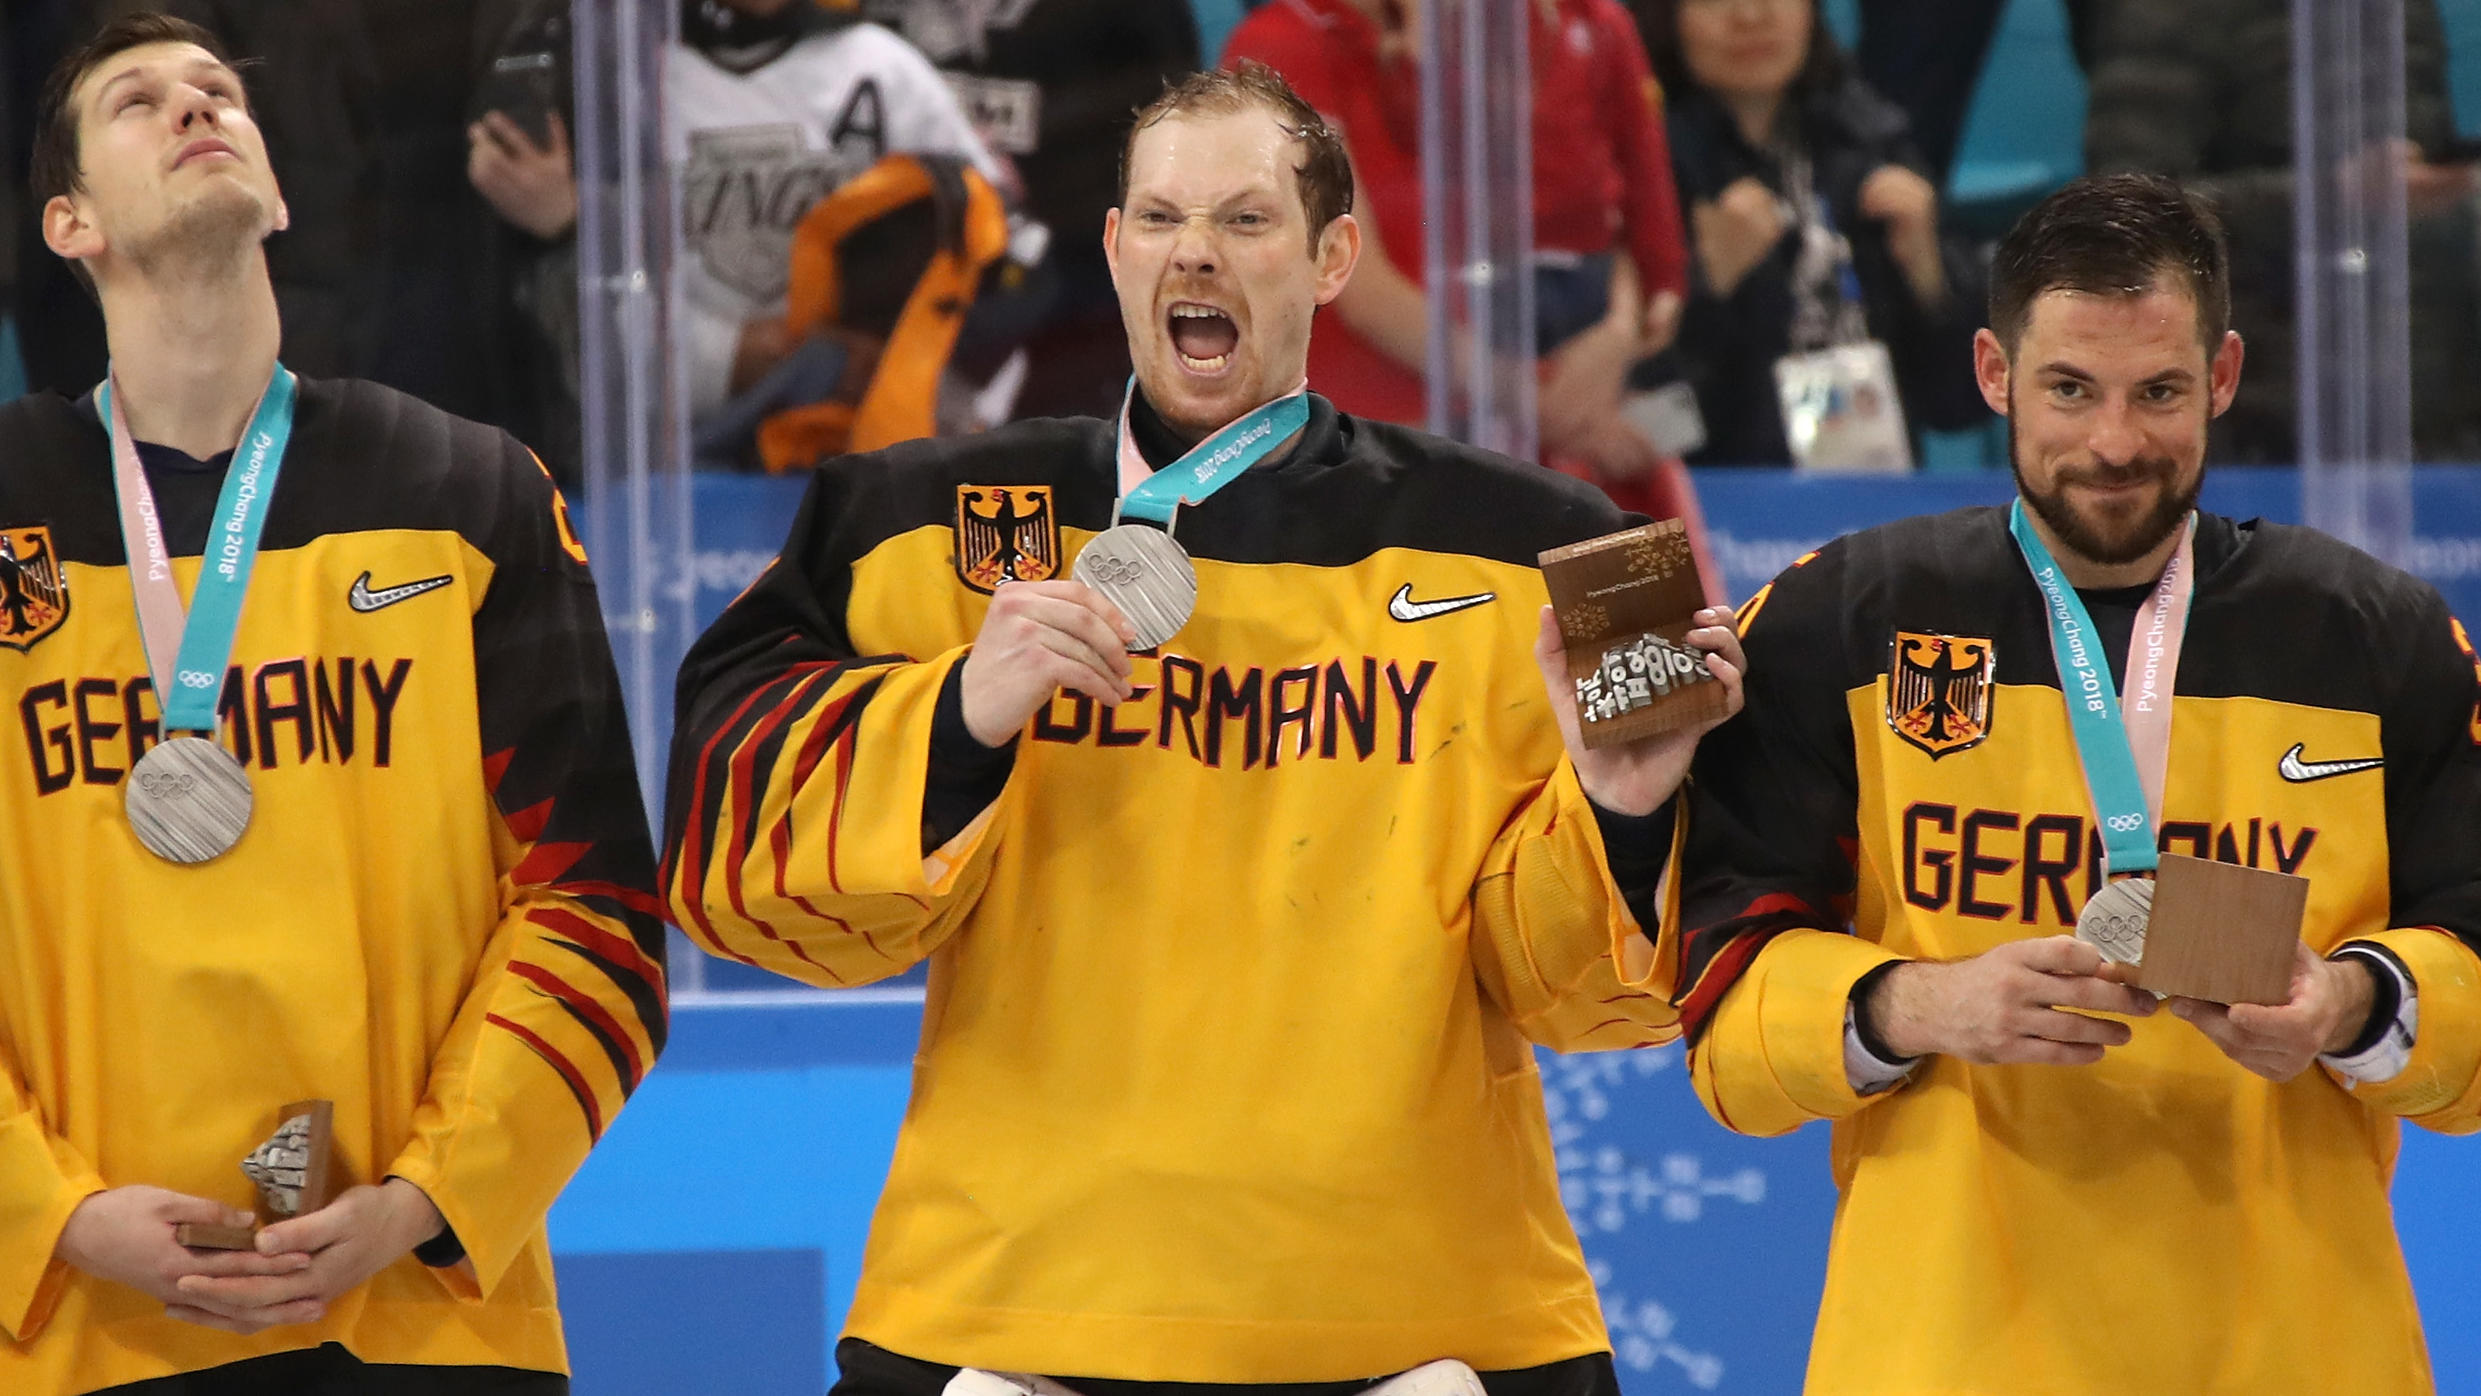 GANGNEUNG, SOUTH KOREA - FEBRUARY 25: Silver medal winners Frank Mauer #28, Danny Aus Den Birken #33 and Yannic Seidenberg #36 of Germany react during the medal ceremony for the Men's Gold Medal Game against Olympic Athletes from Russia on day sixtee